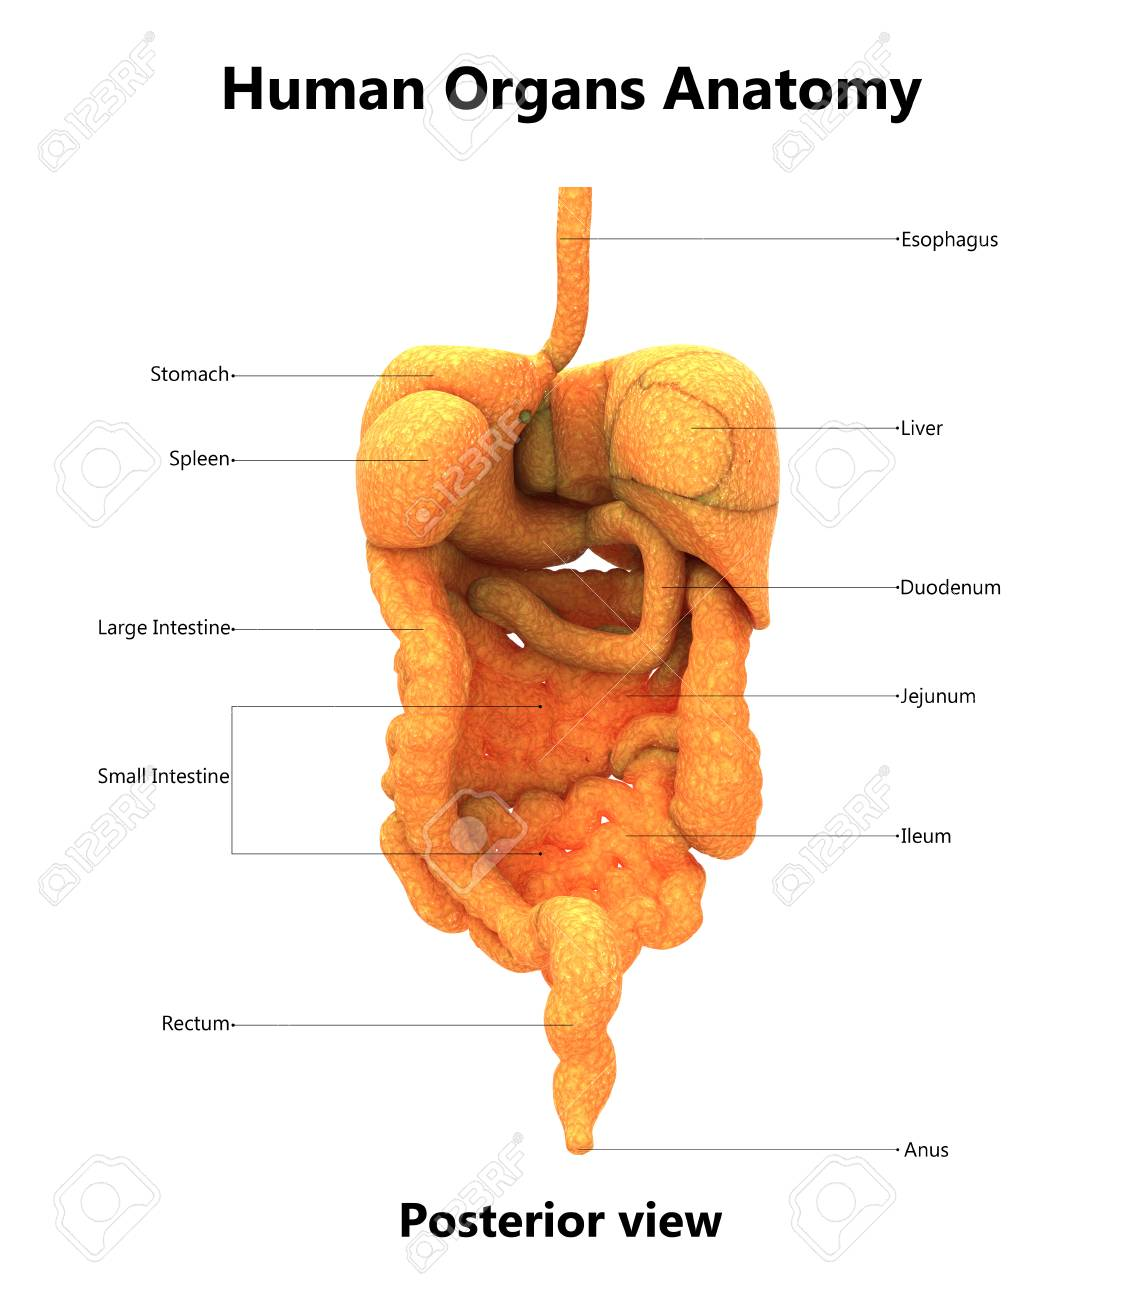 Human Digestive System With Labels Anatomy Posterior View